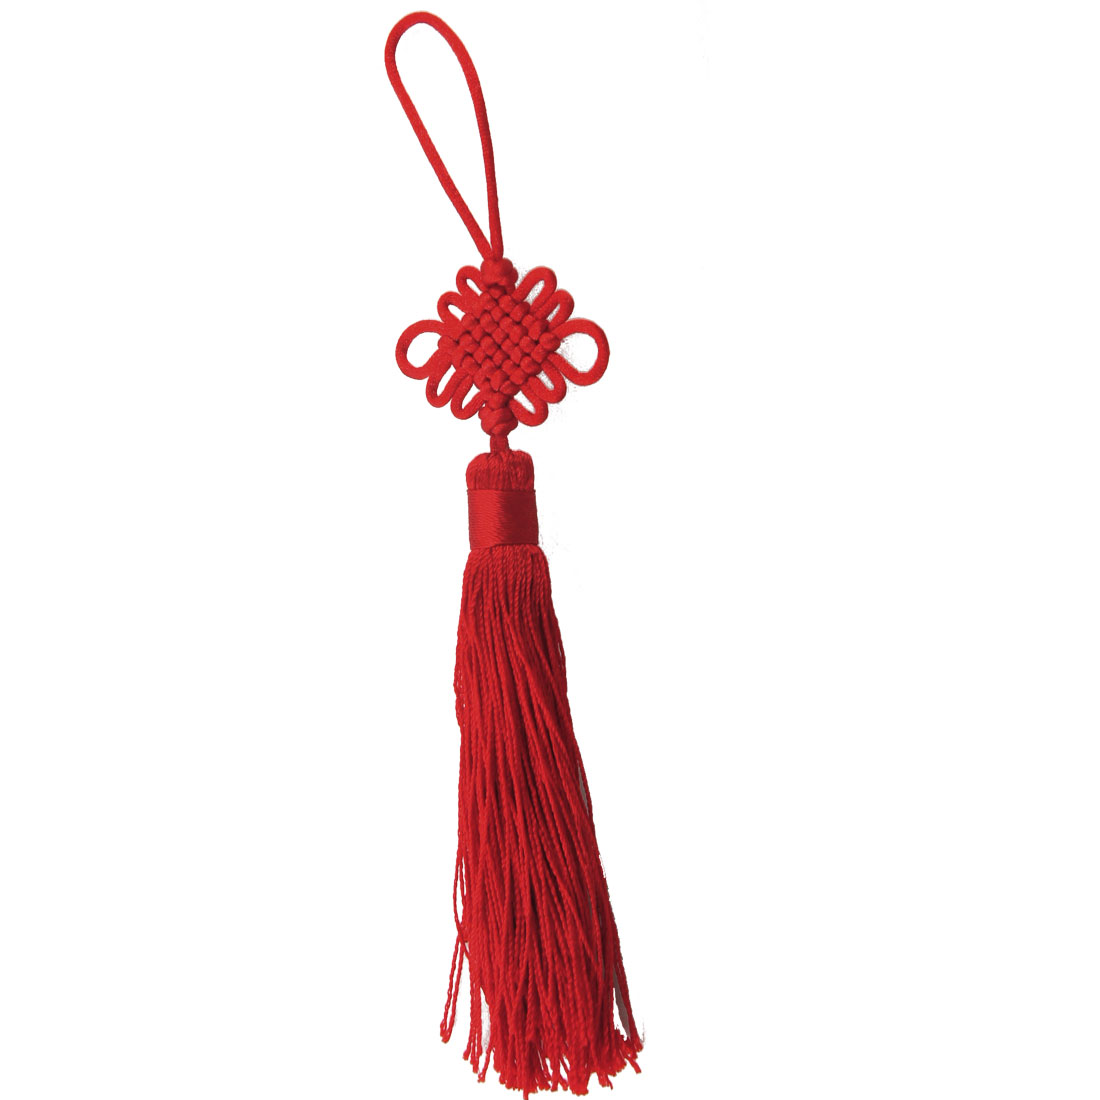 Red Nylon Handmade Tassel Decor Chinese Knot Hanging for Car Truck